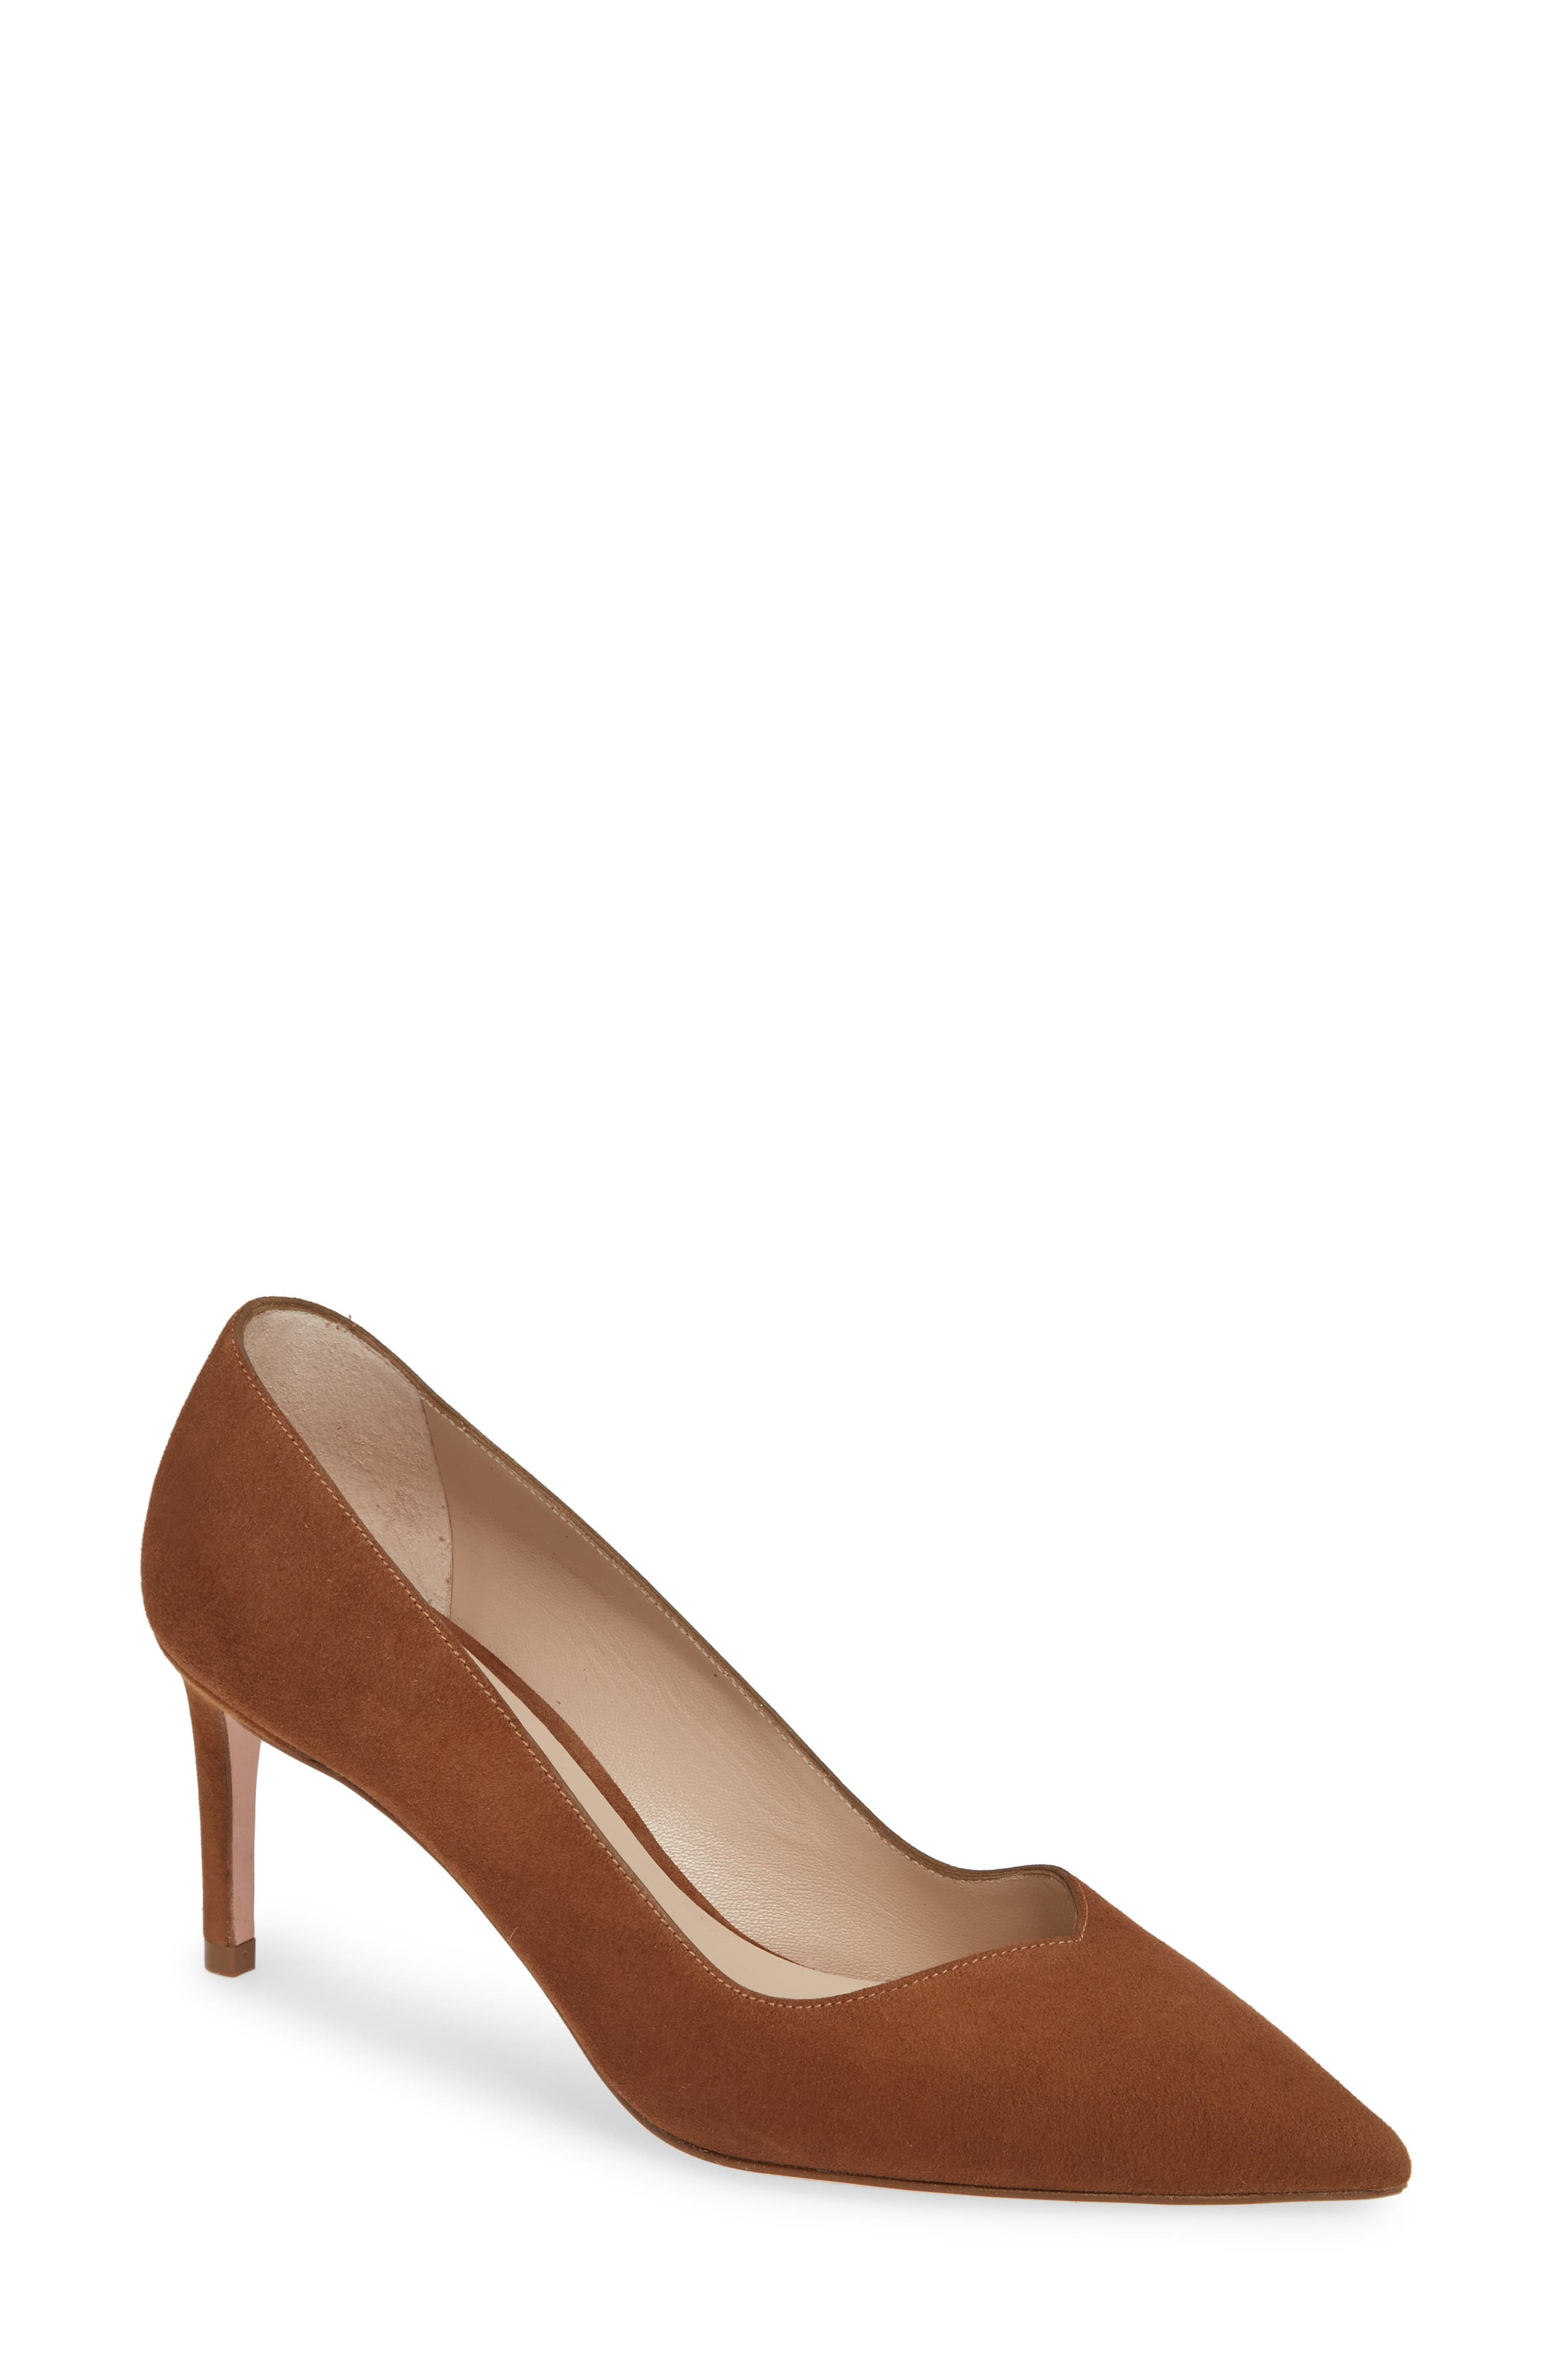 Stuart Weitzman Anny Pointy Toe Pump, Brown